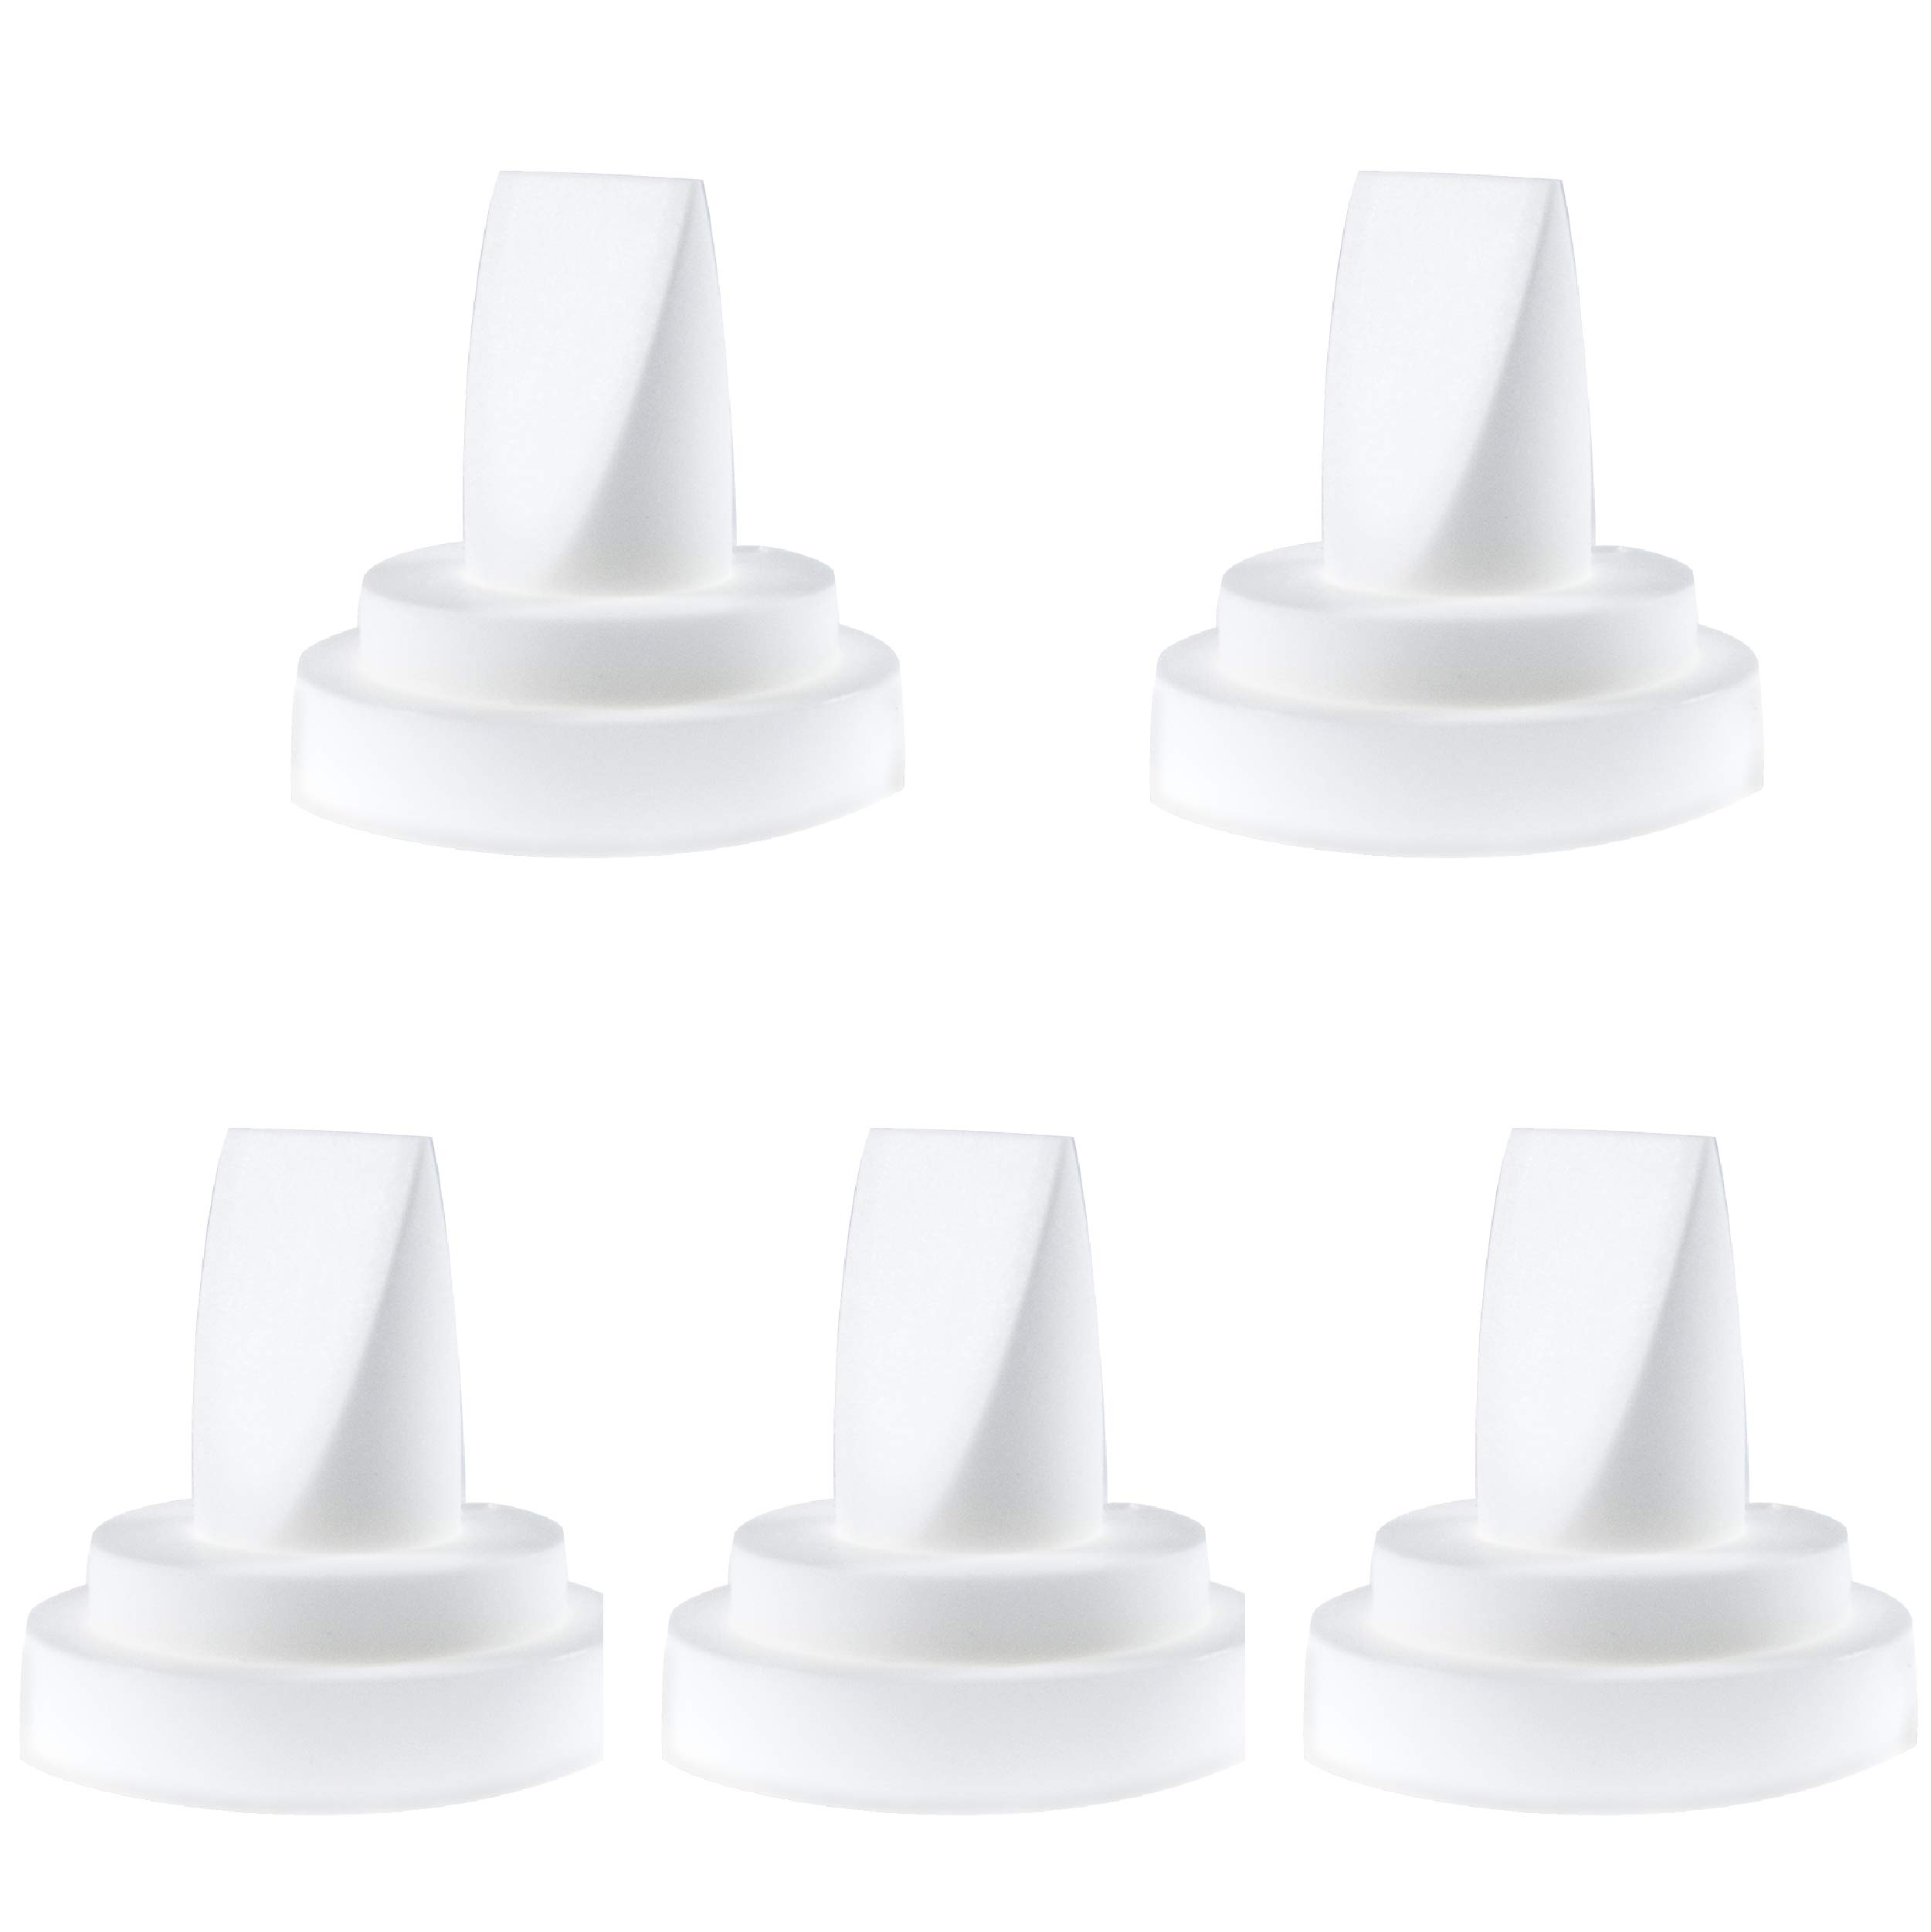 Nenesupply 5 pc Compatible Duckbill Valves for Spectra S1 Spectra S2 and Medela Pump In Style Not Original Spectra S2 Accessories Replaces Spectra Duckbill Valve and Medela Duckbill Valve